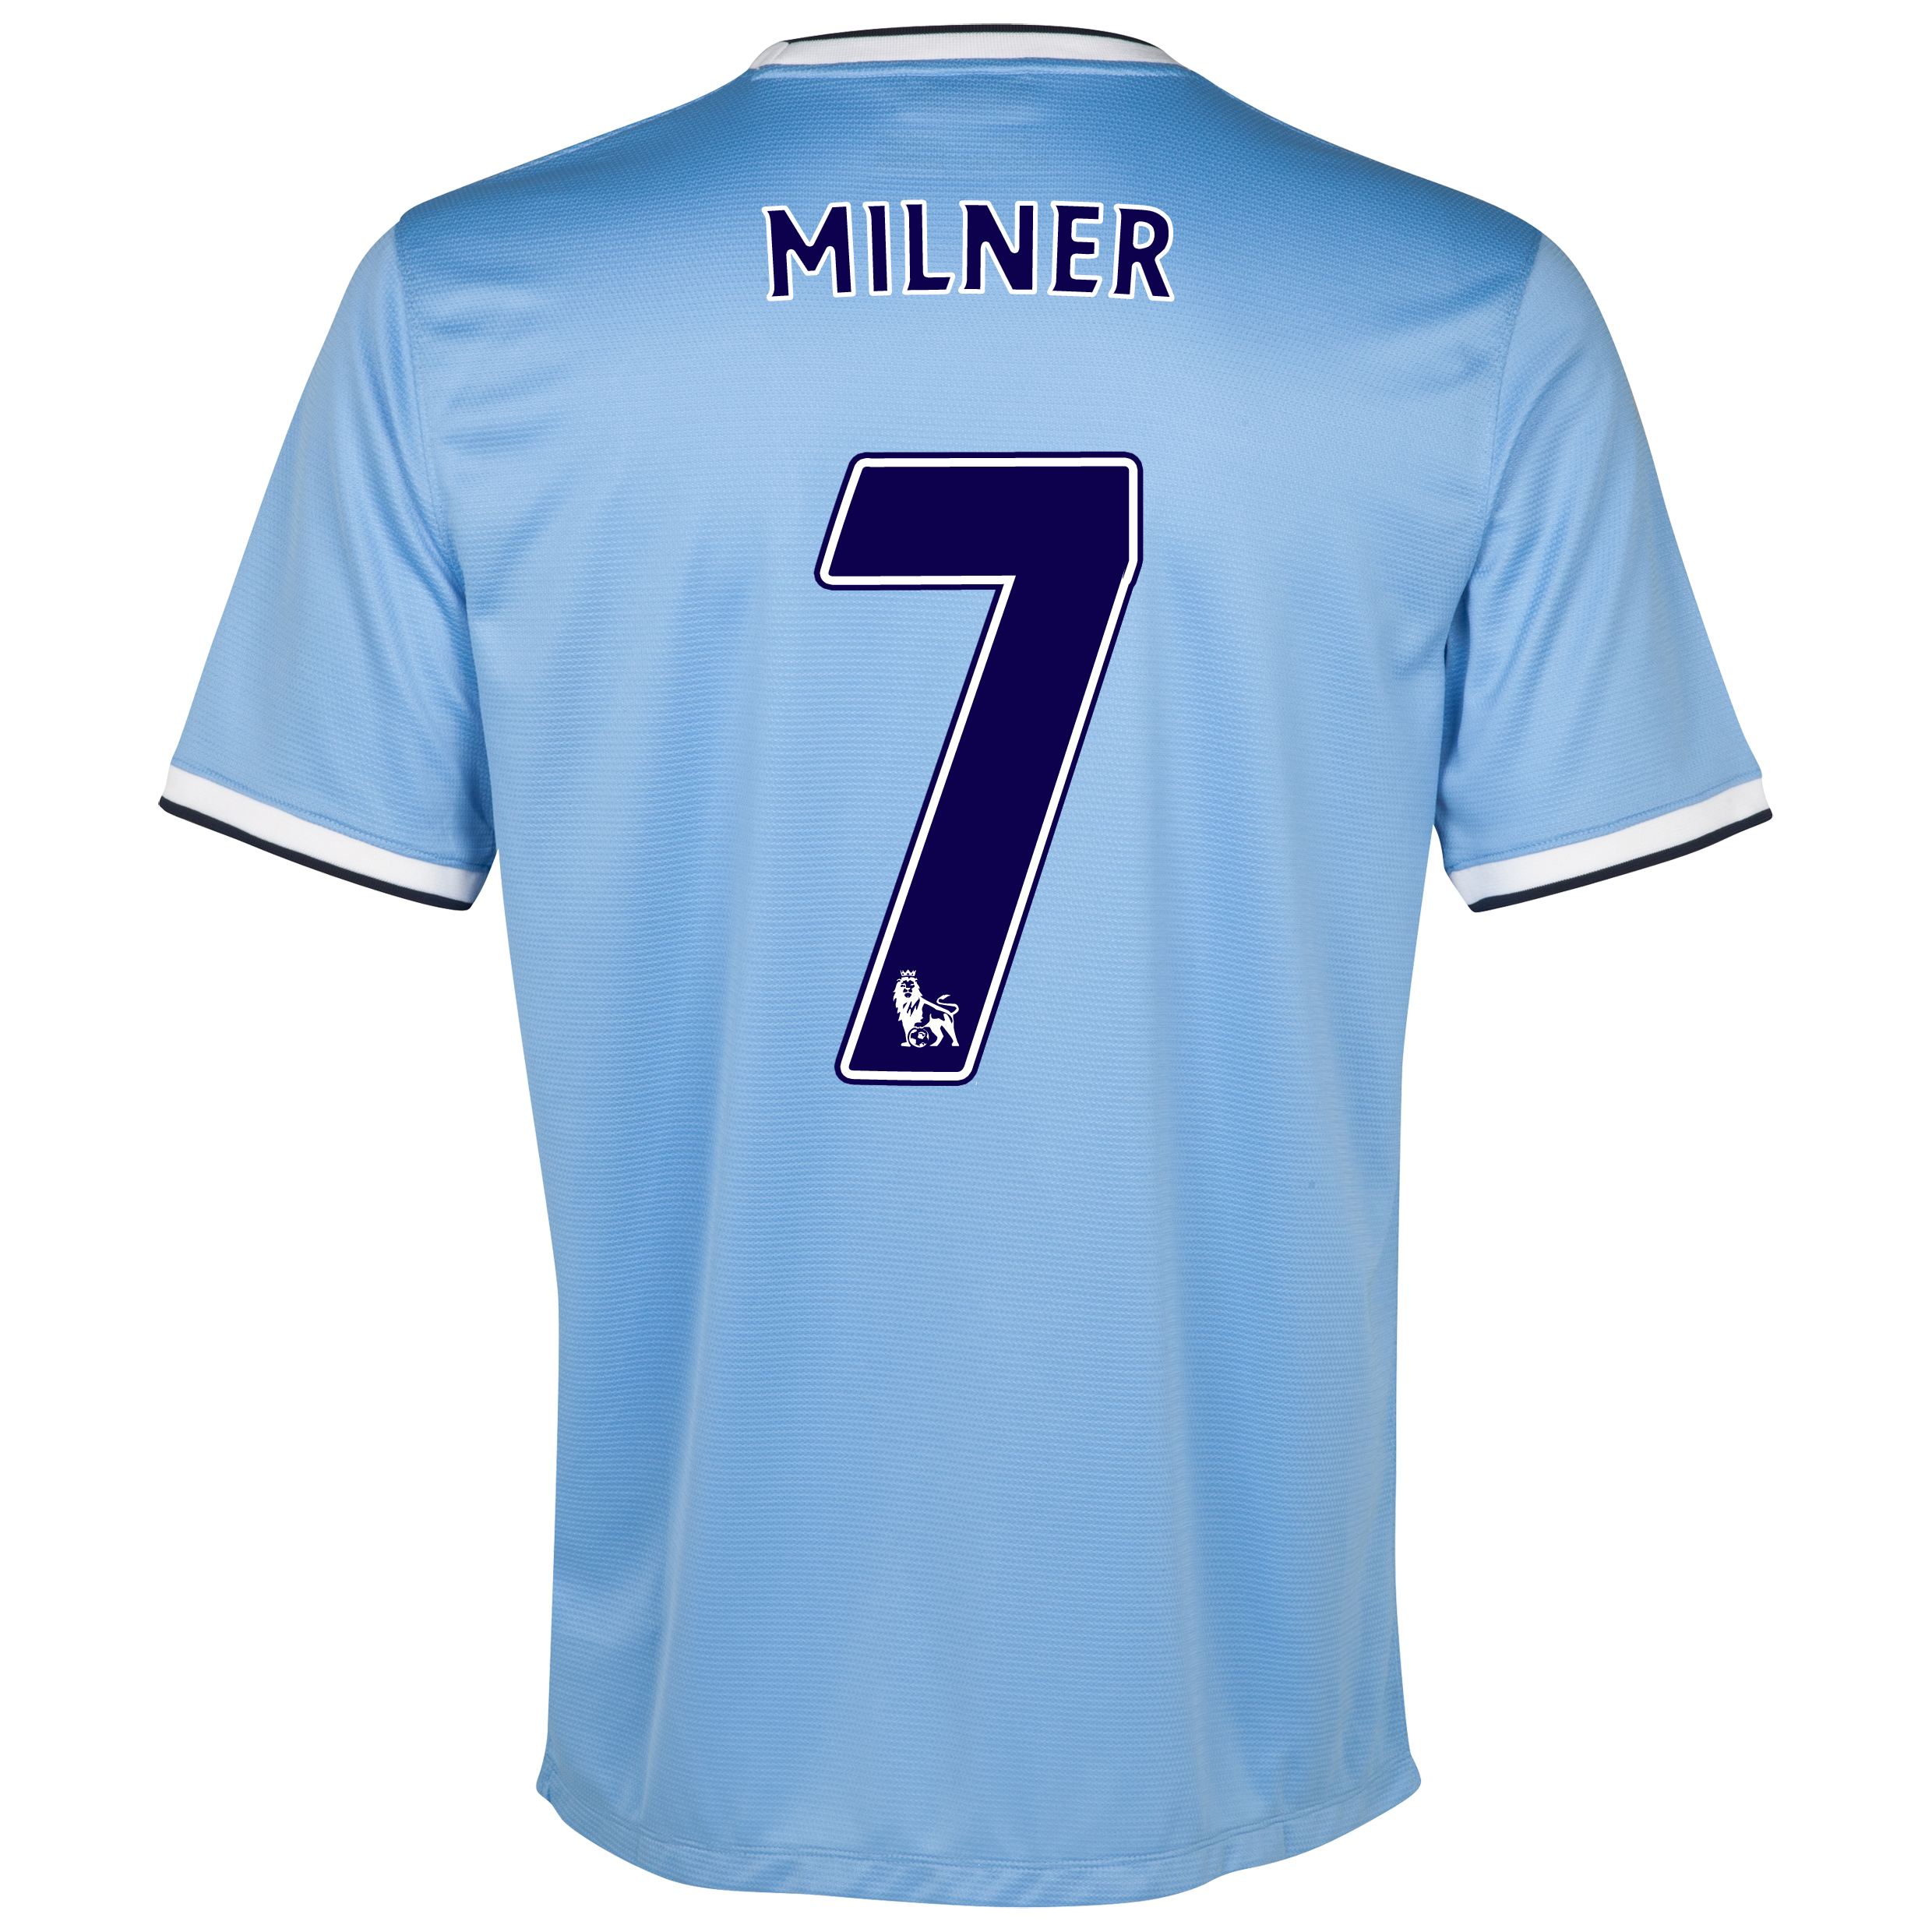 Manchester City Home Shirt 2013/14 with Milner 7 printing